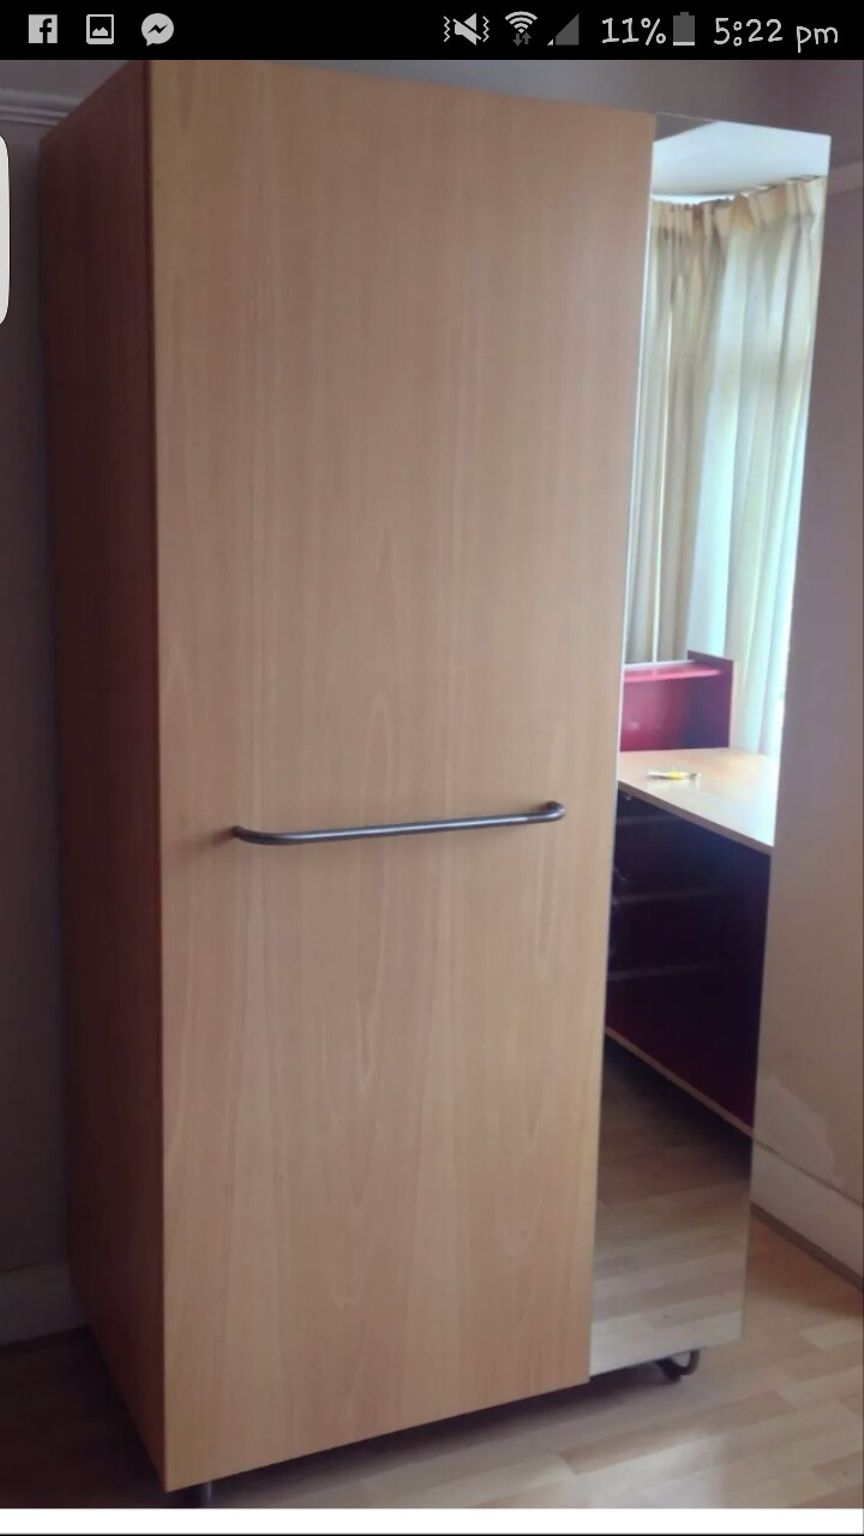 Used Habitat Double Rail Wardrobe In Rm13 Rainham For 5000 Shpock Pertaining To Double Rail Wardrobe (Image 15 of 15)